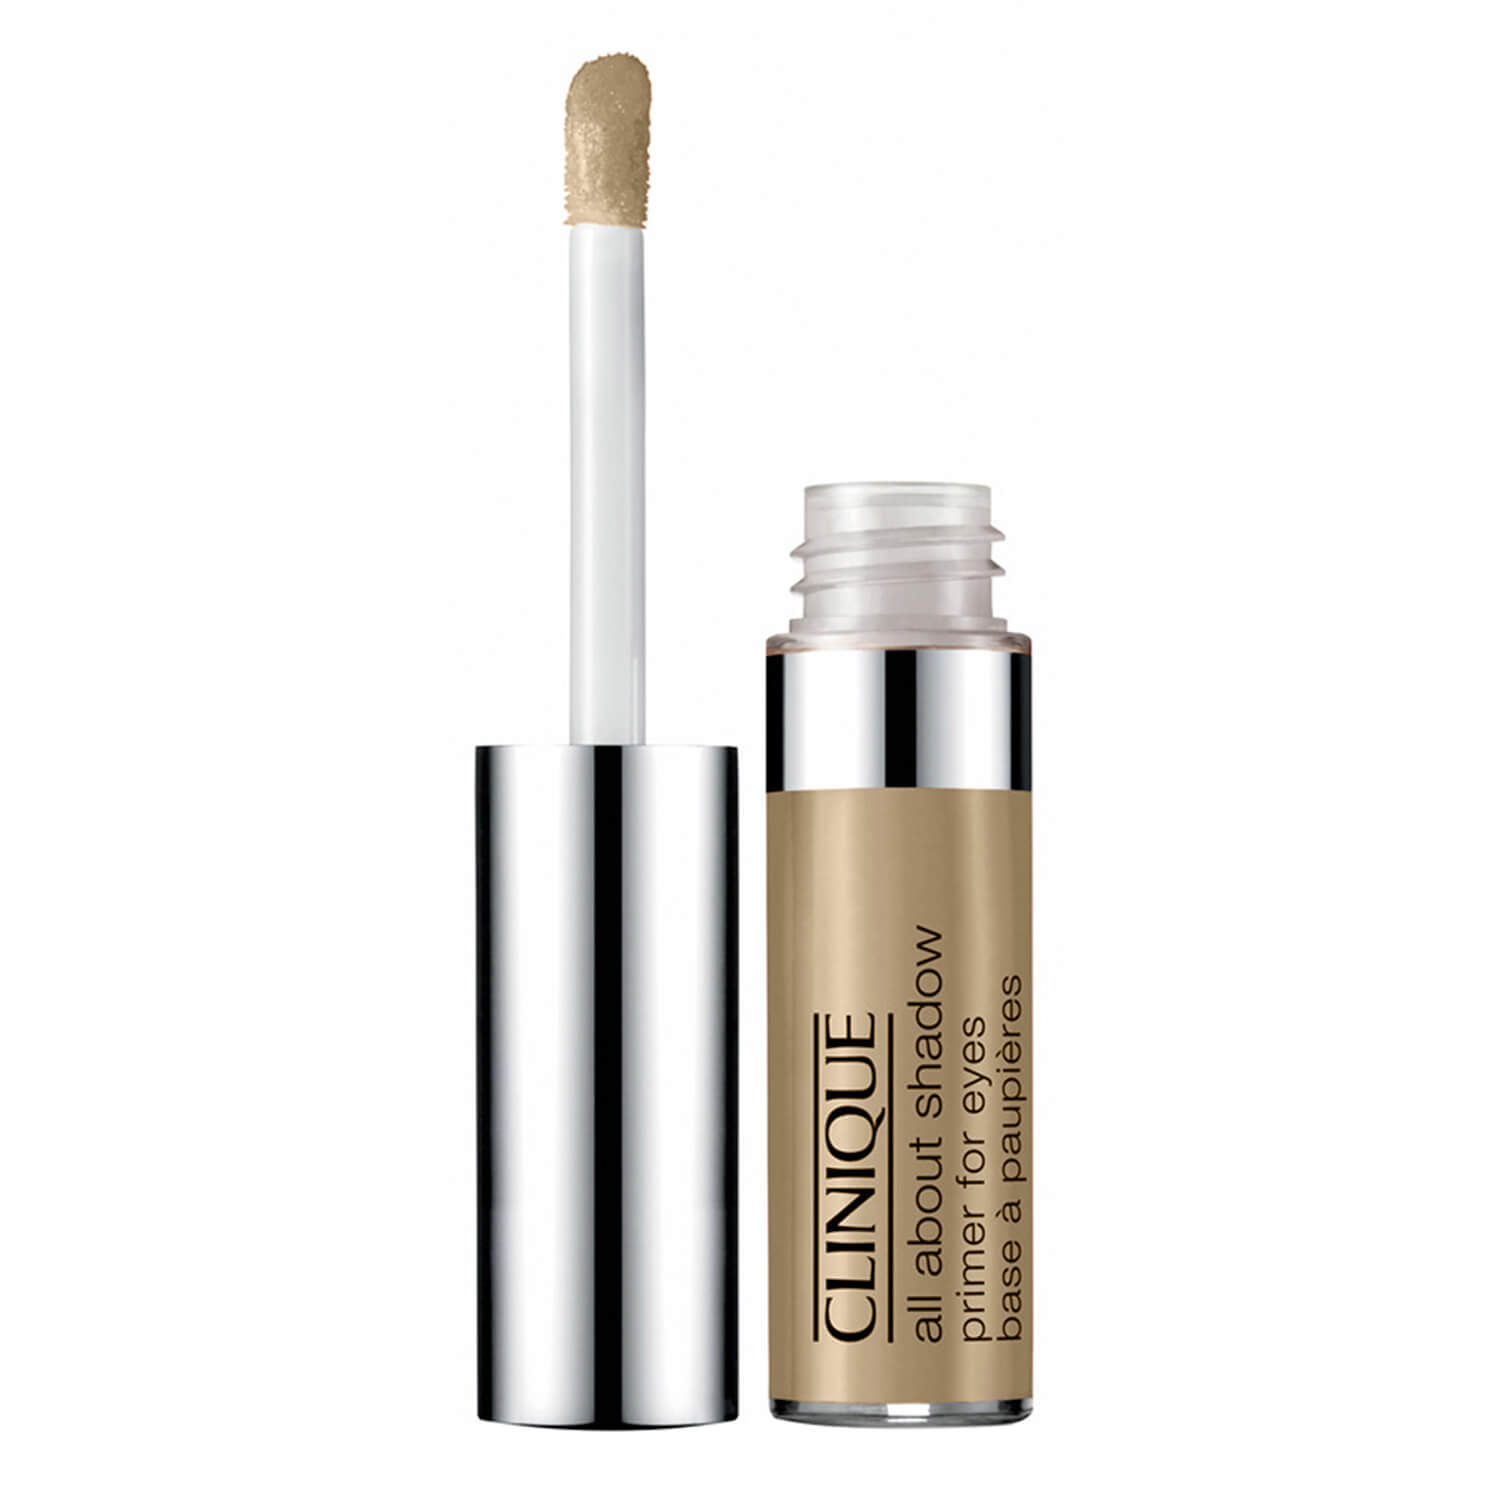 All About Shadow Primer For Eyes - 01 Very Fair